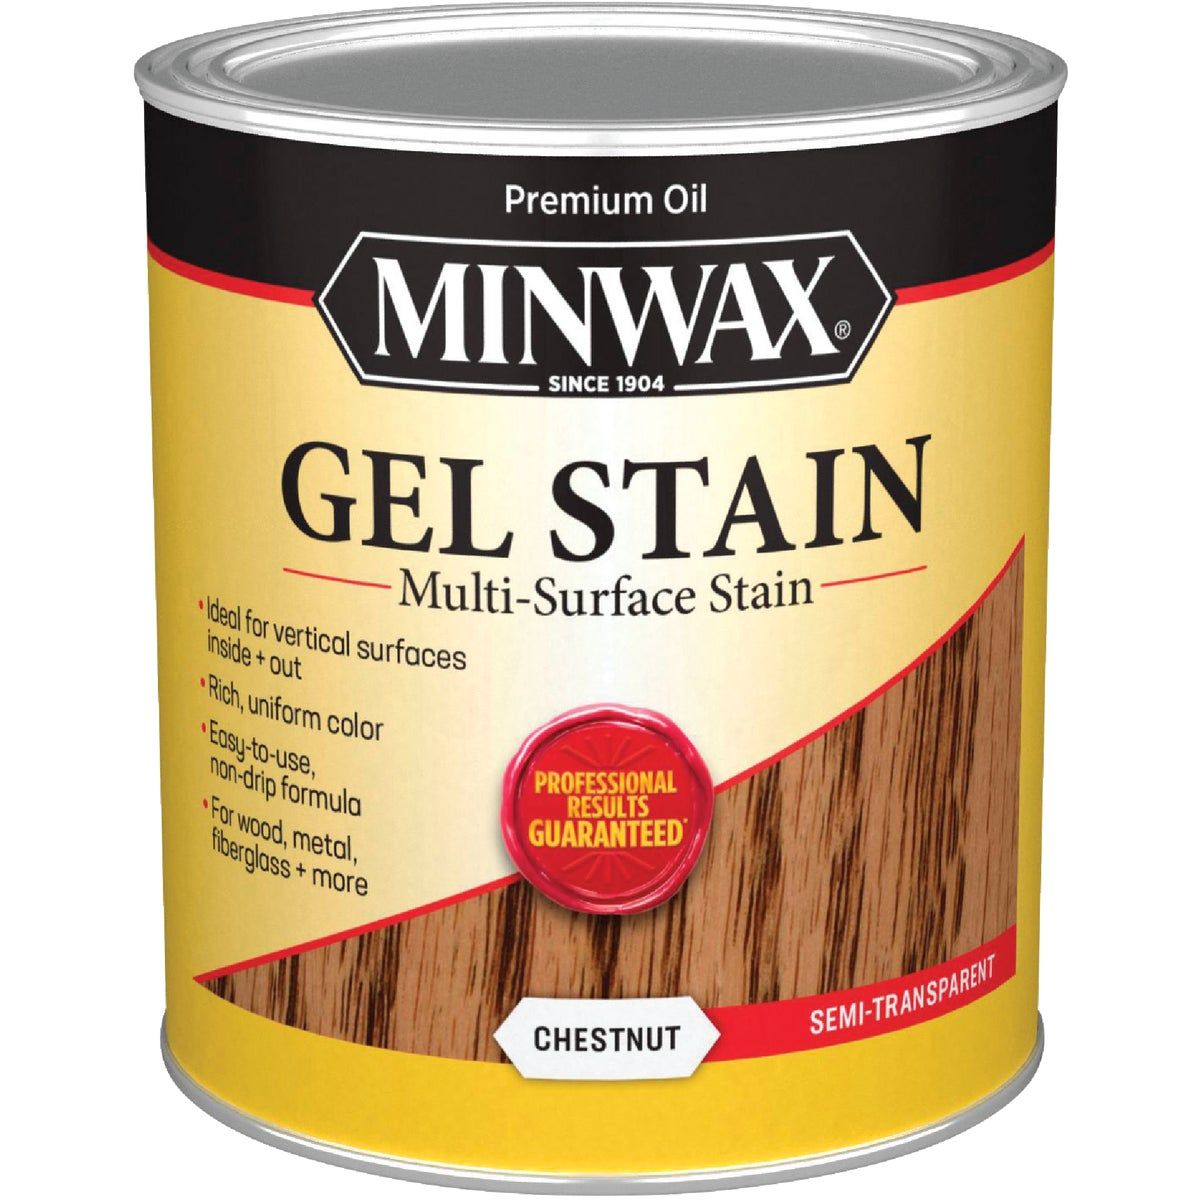 CHESTNUT GEL STAIN - 66010 by Minwax Company